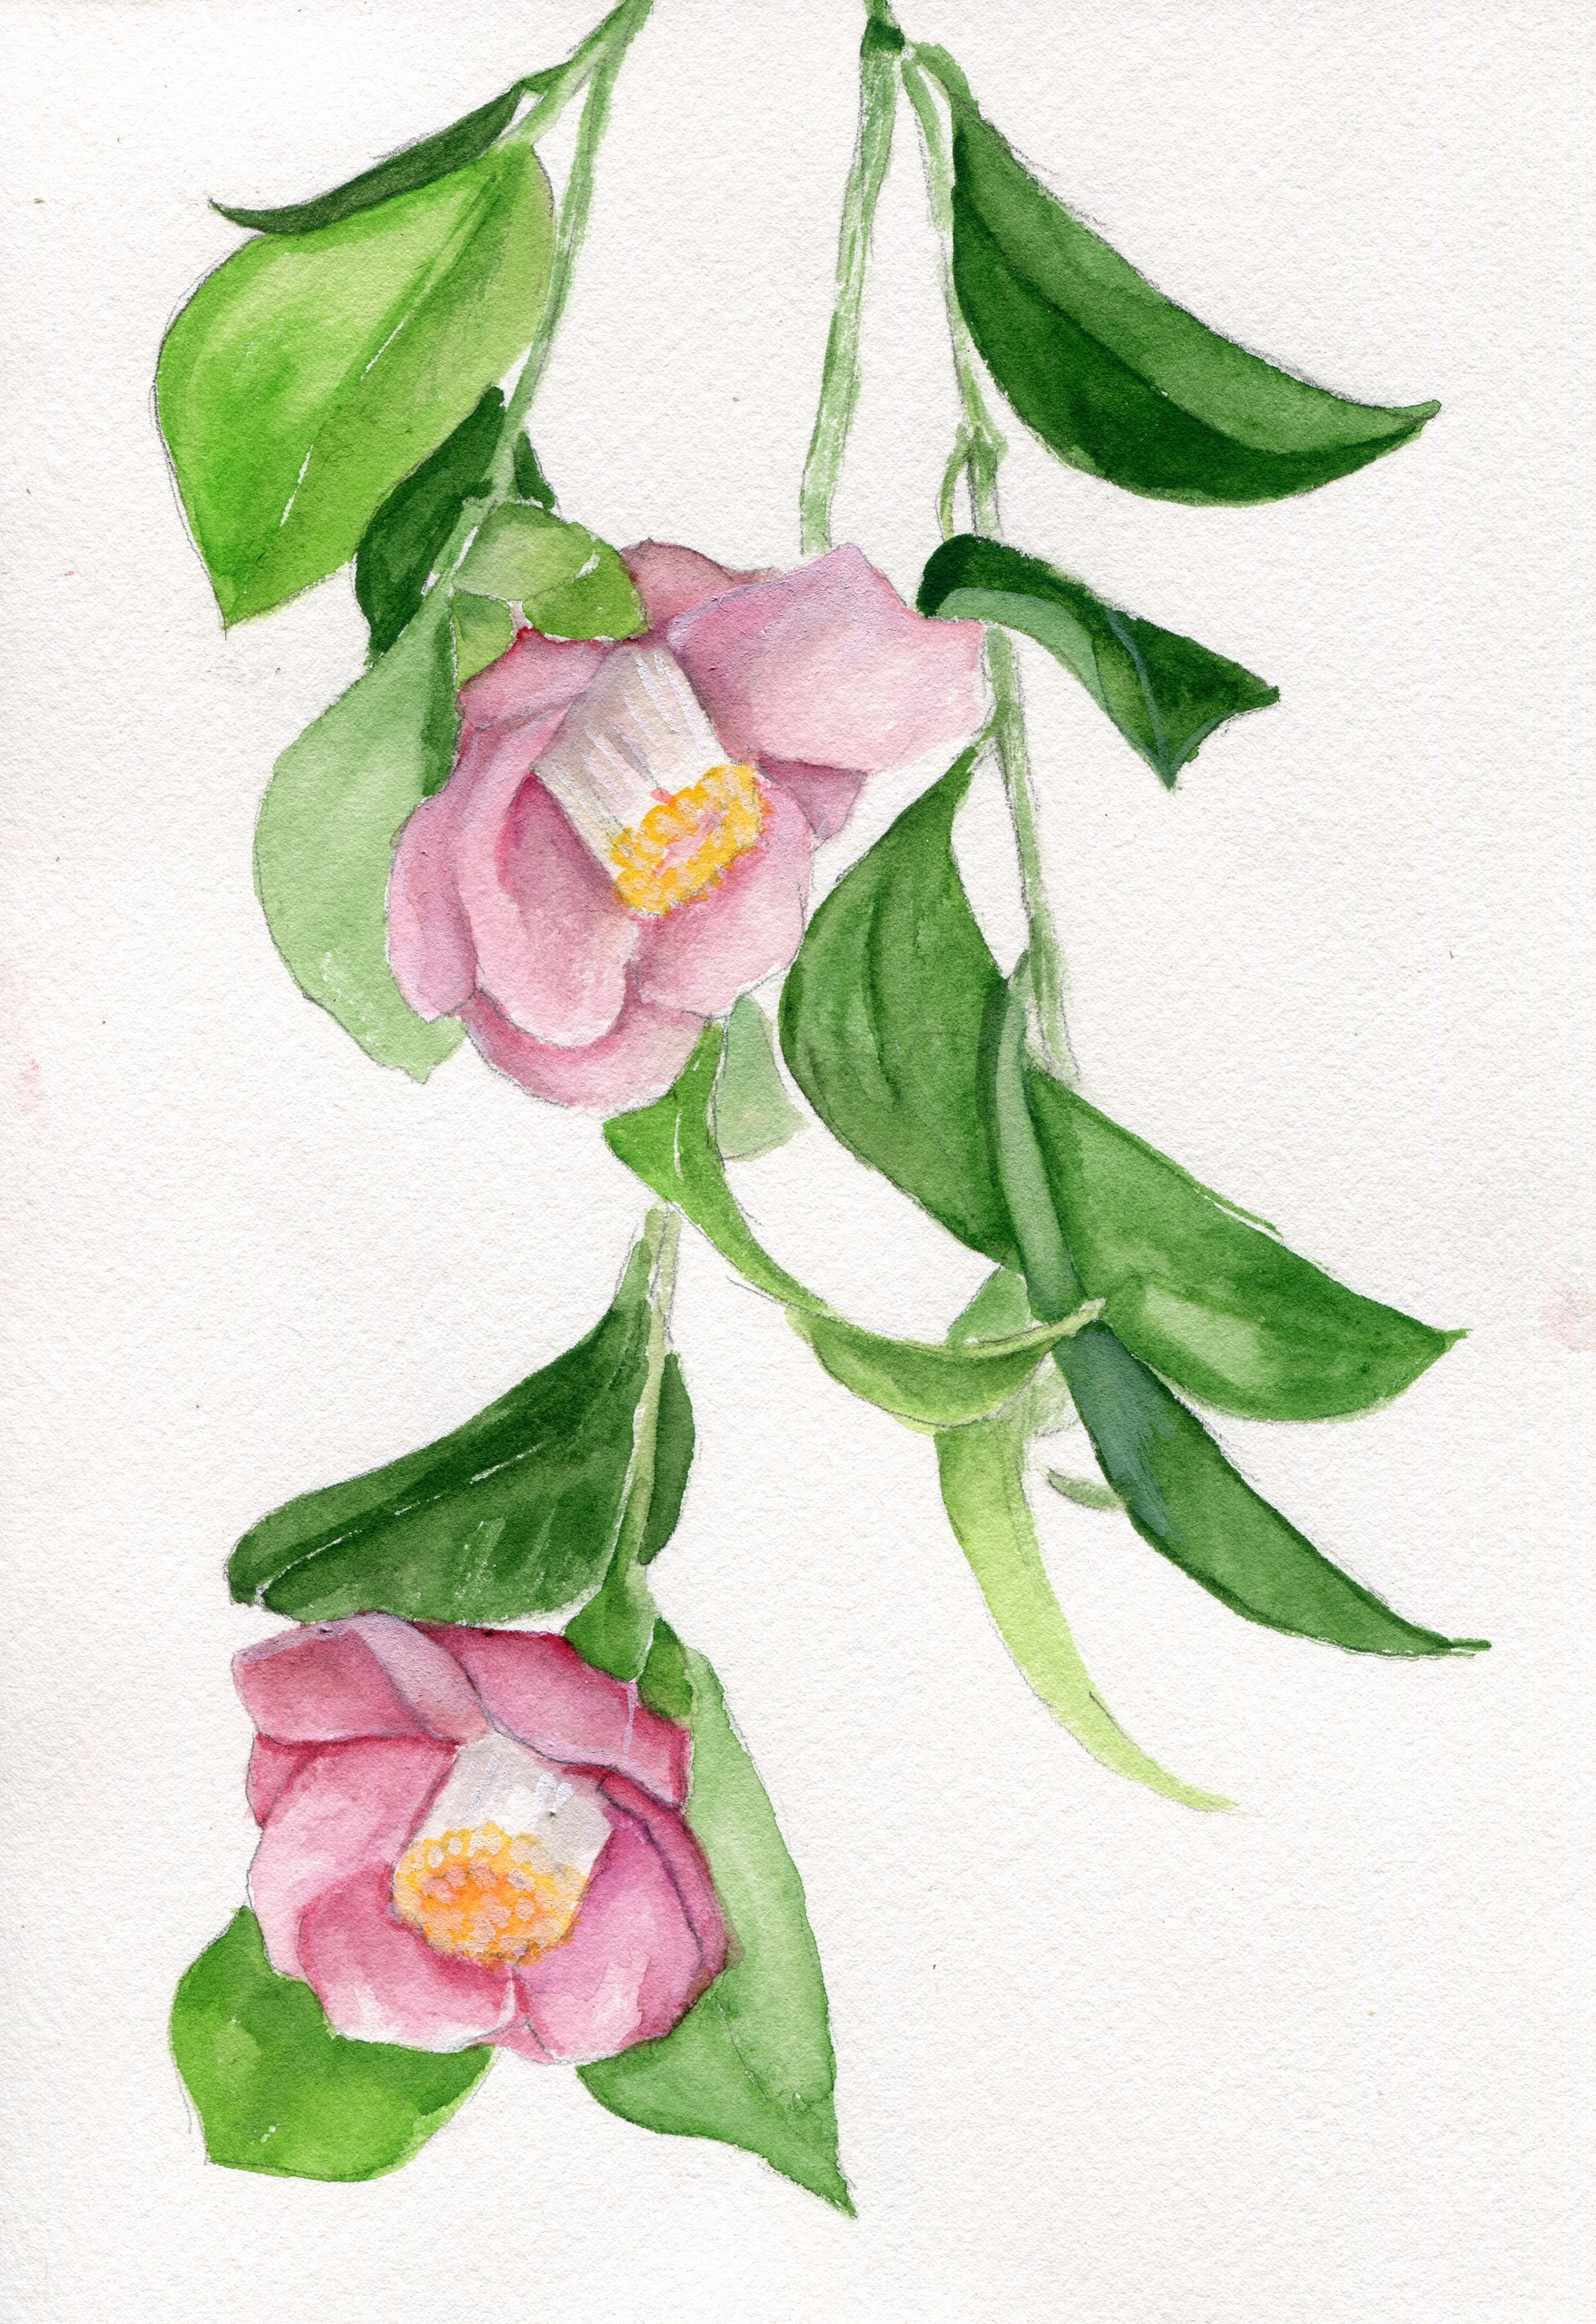 Hanging Watercolor Gouache Cott - havekat | ello